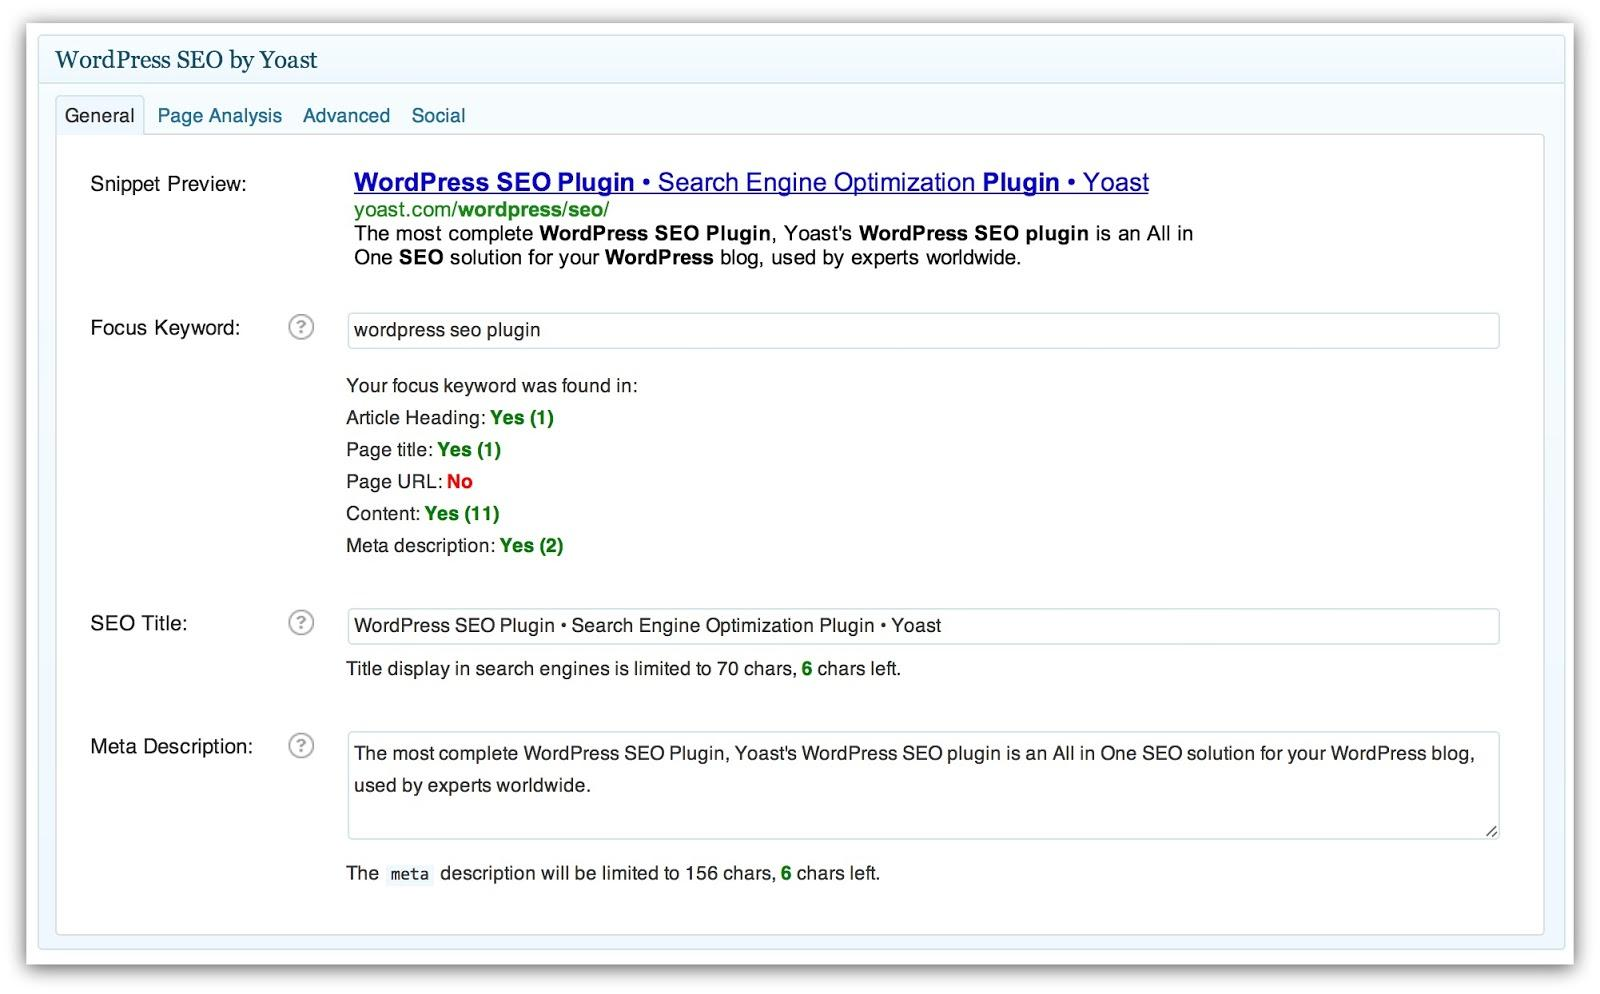 Screenshot of the Yoast SEO plugin on wordpress